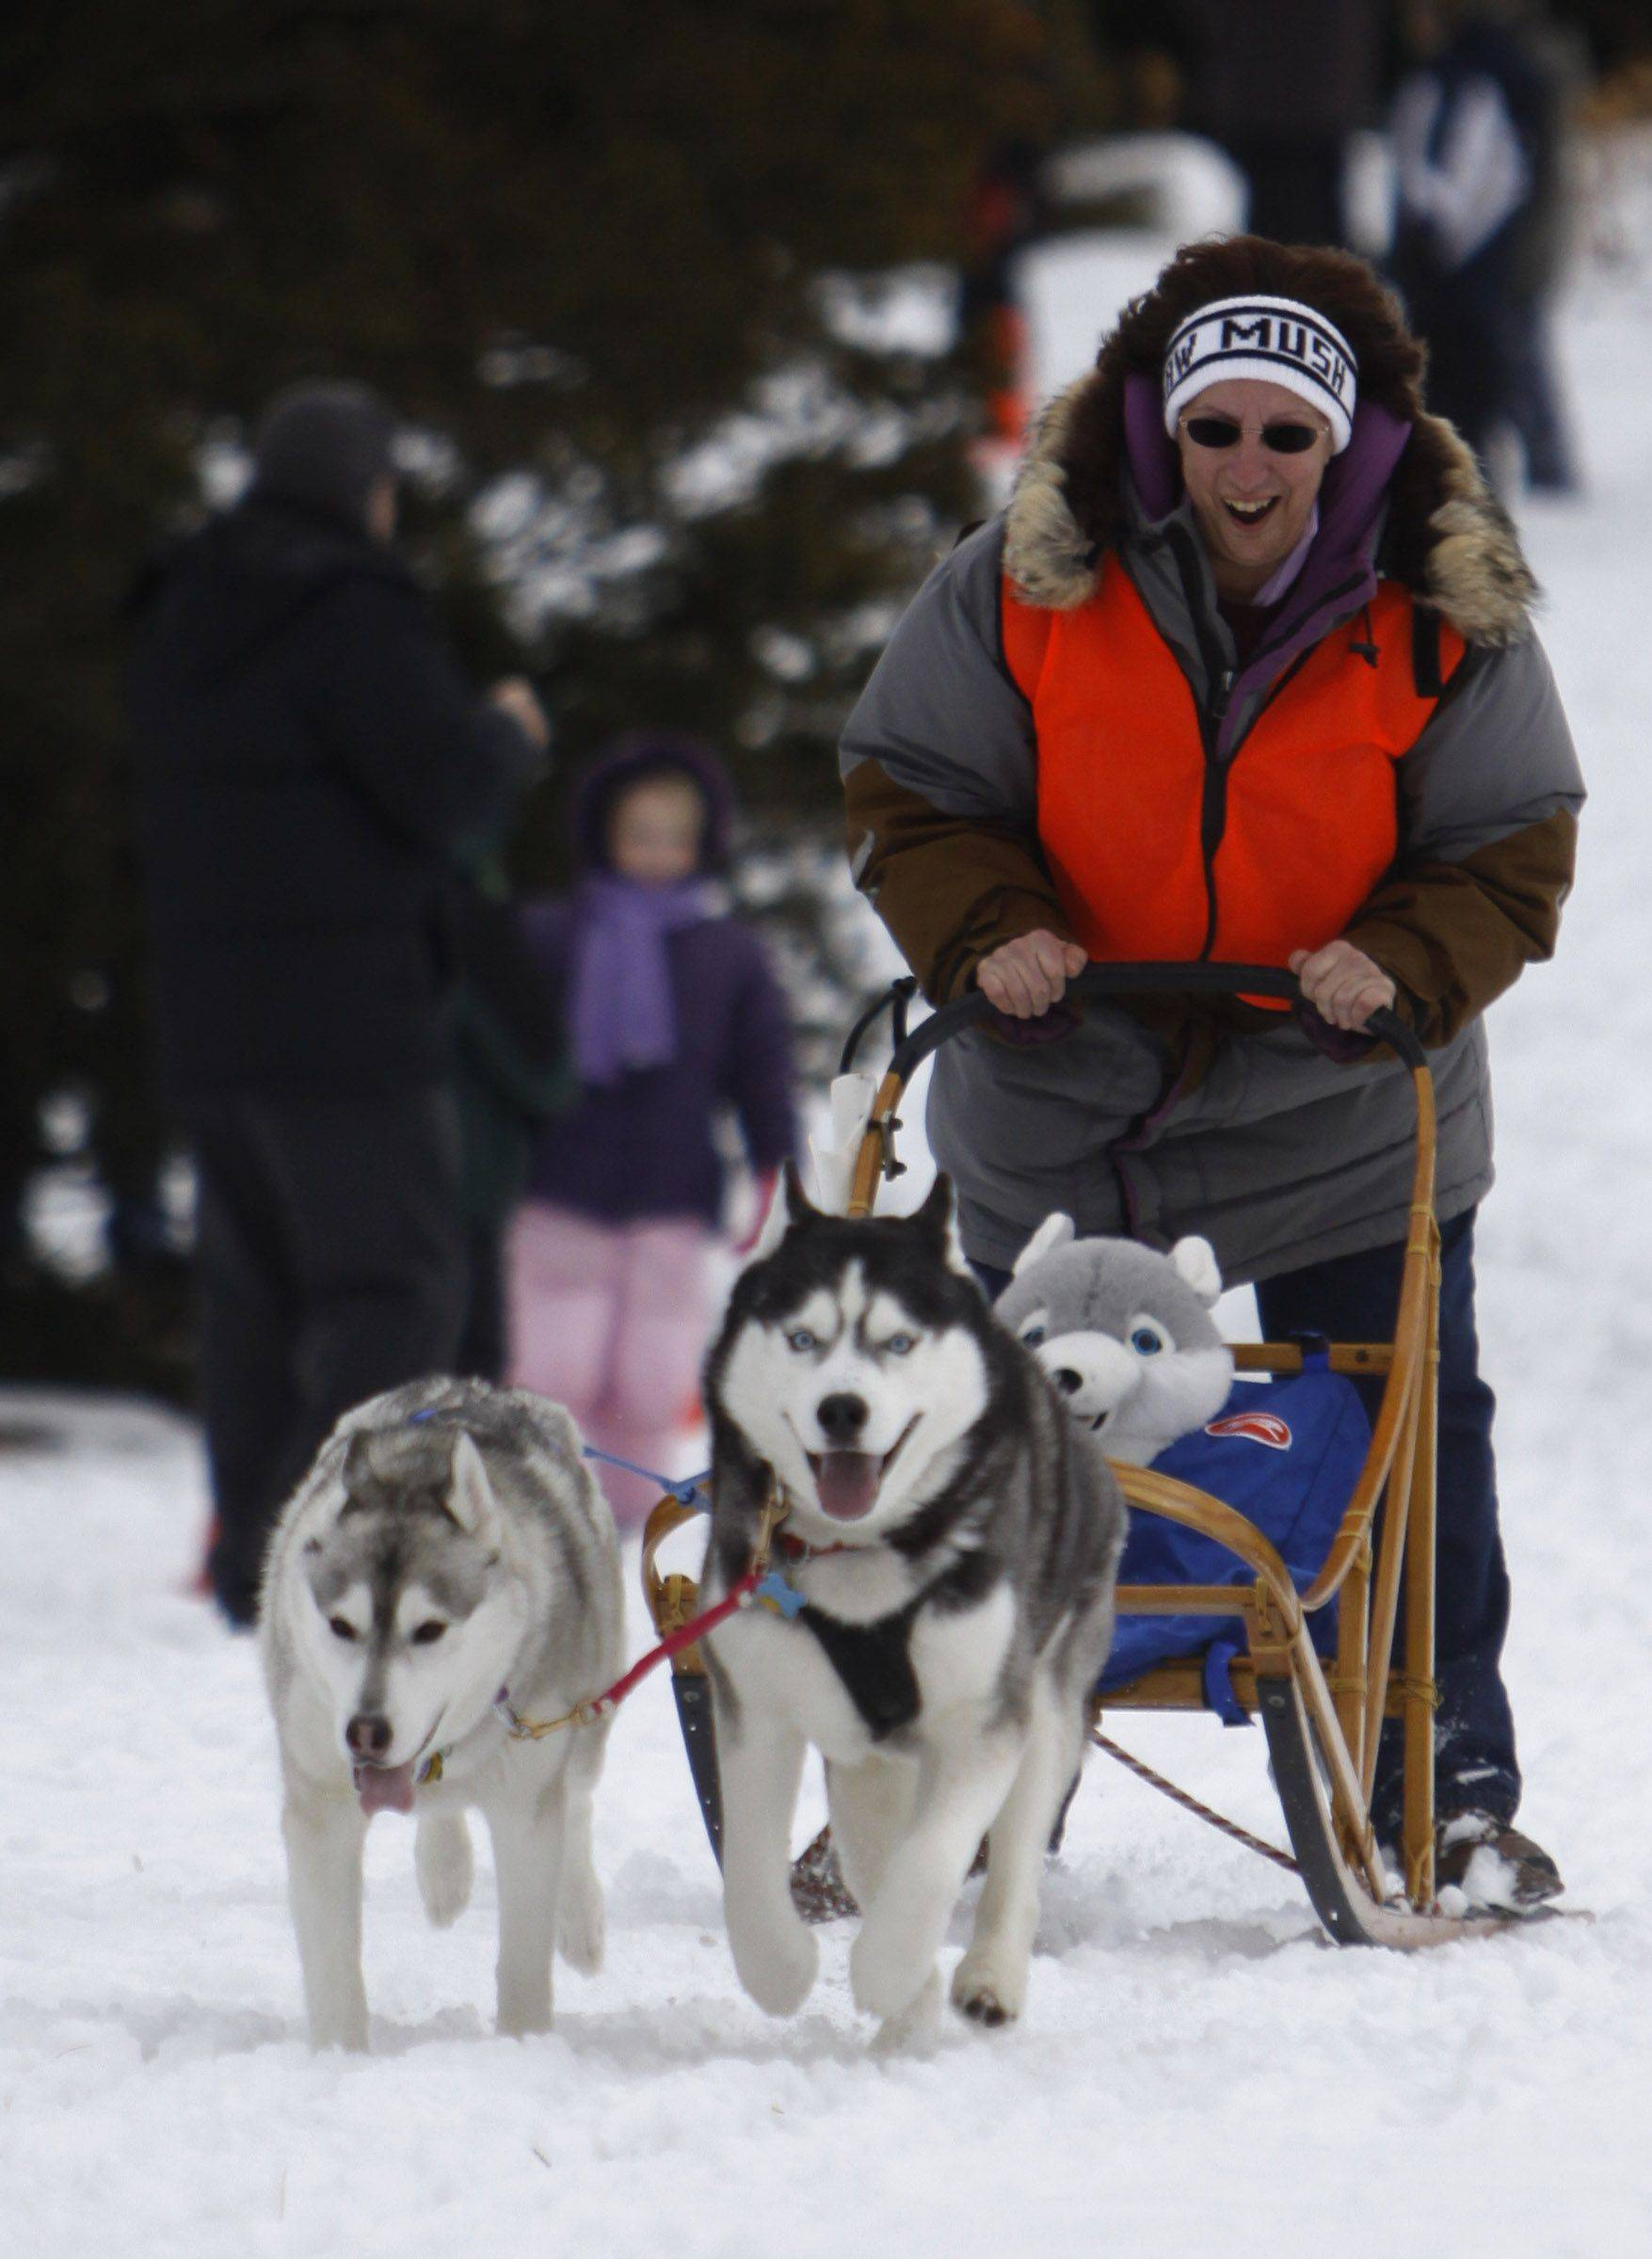 See Husky Heroes at the Morton Arboretum in Lisle.